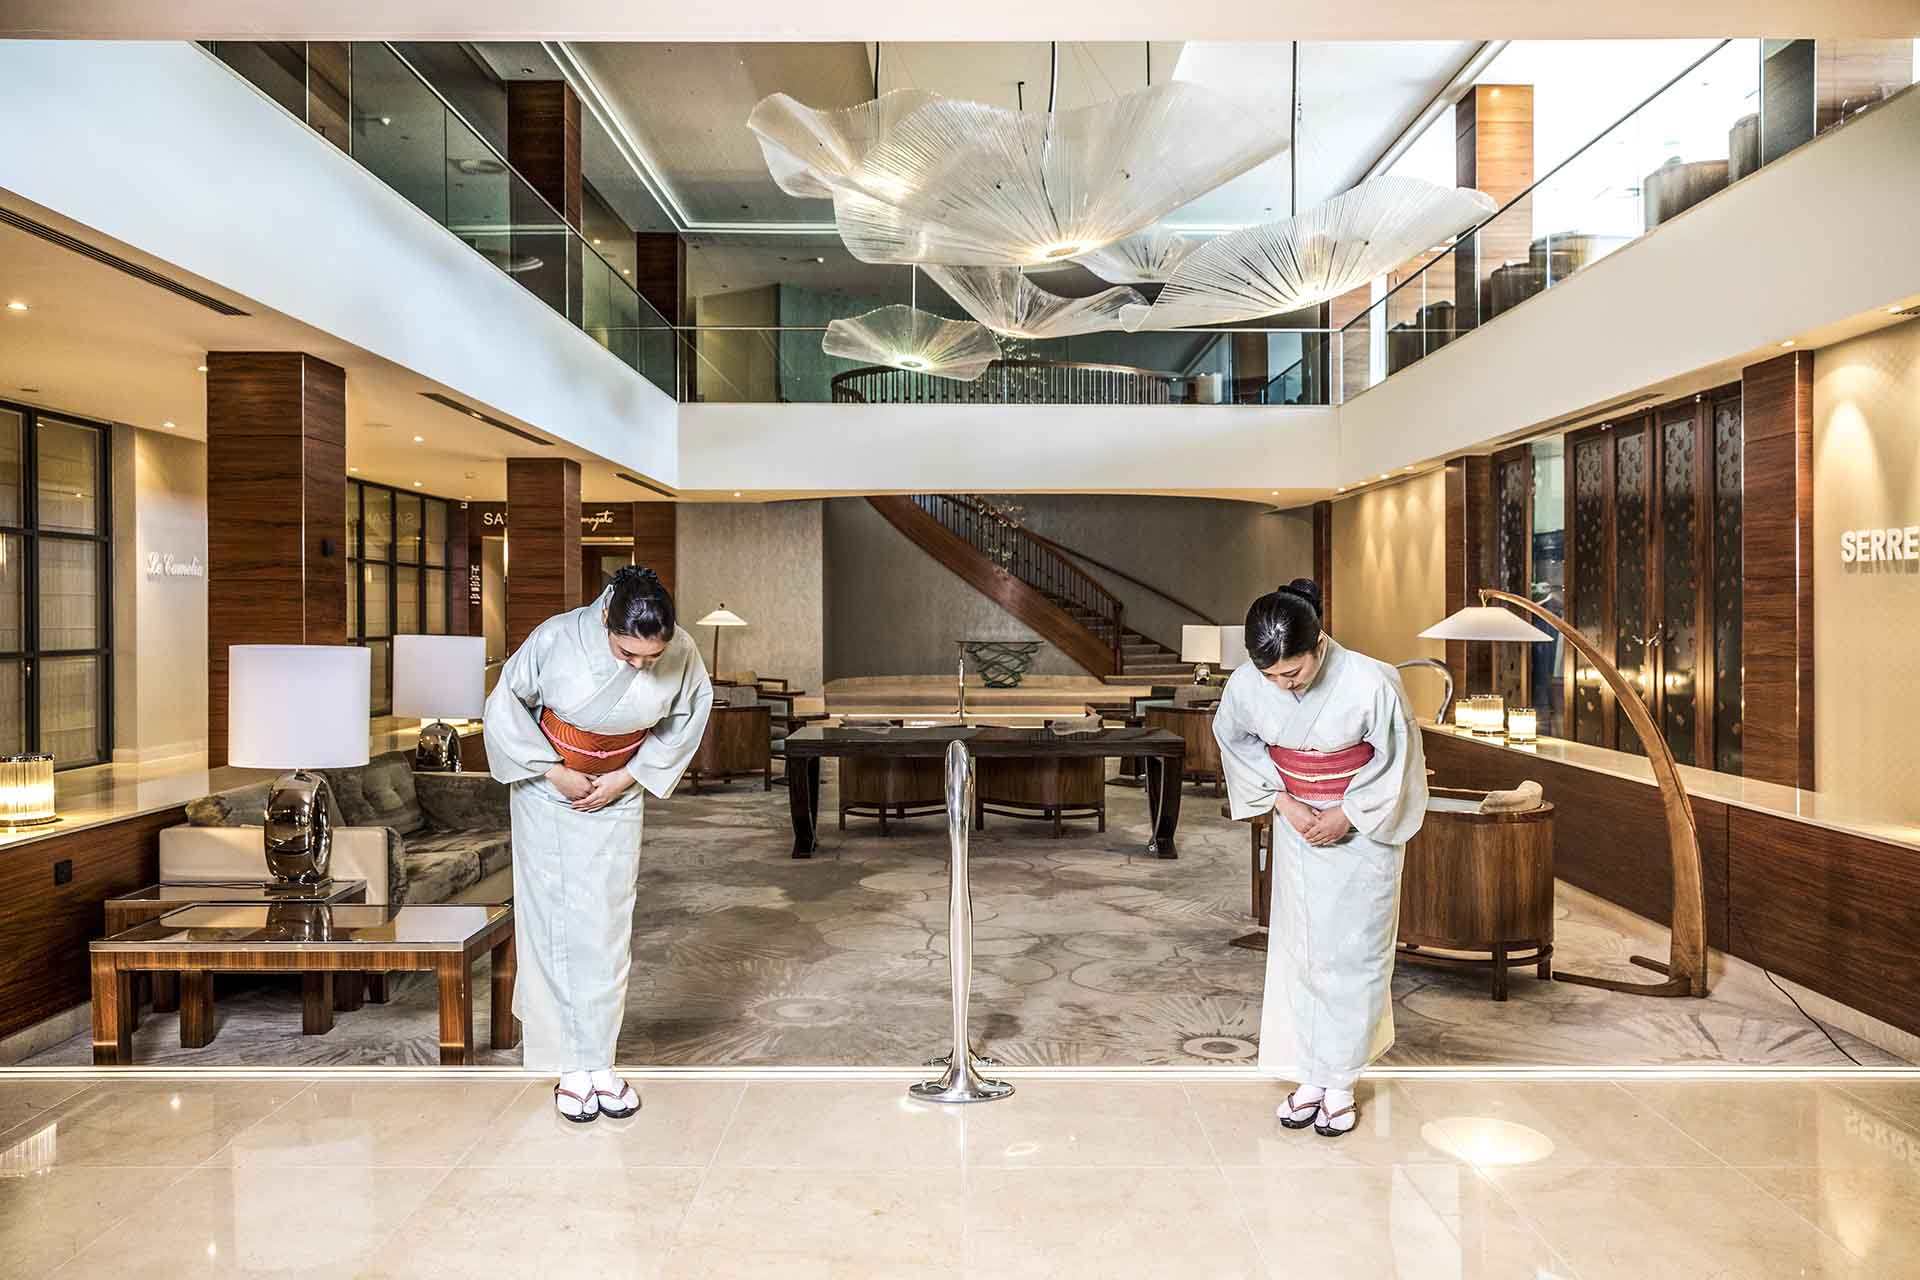 Kimono lady's bowing in lobby